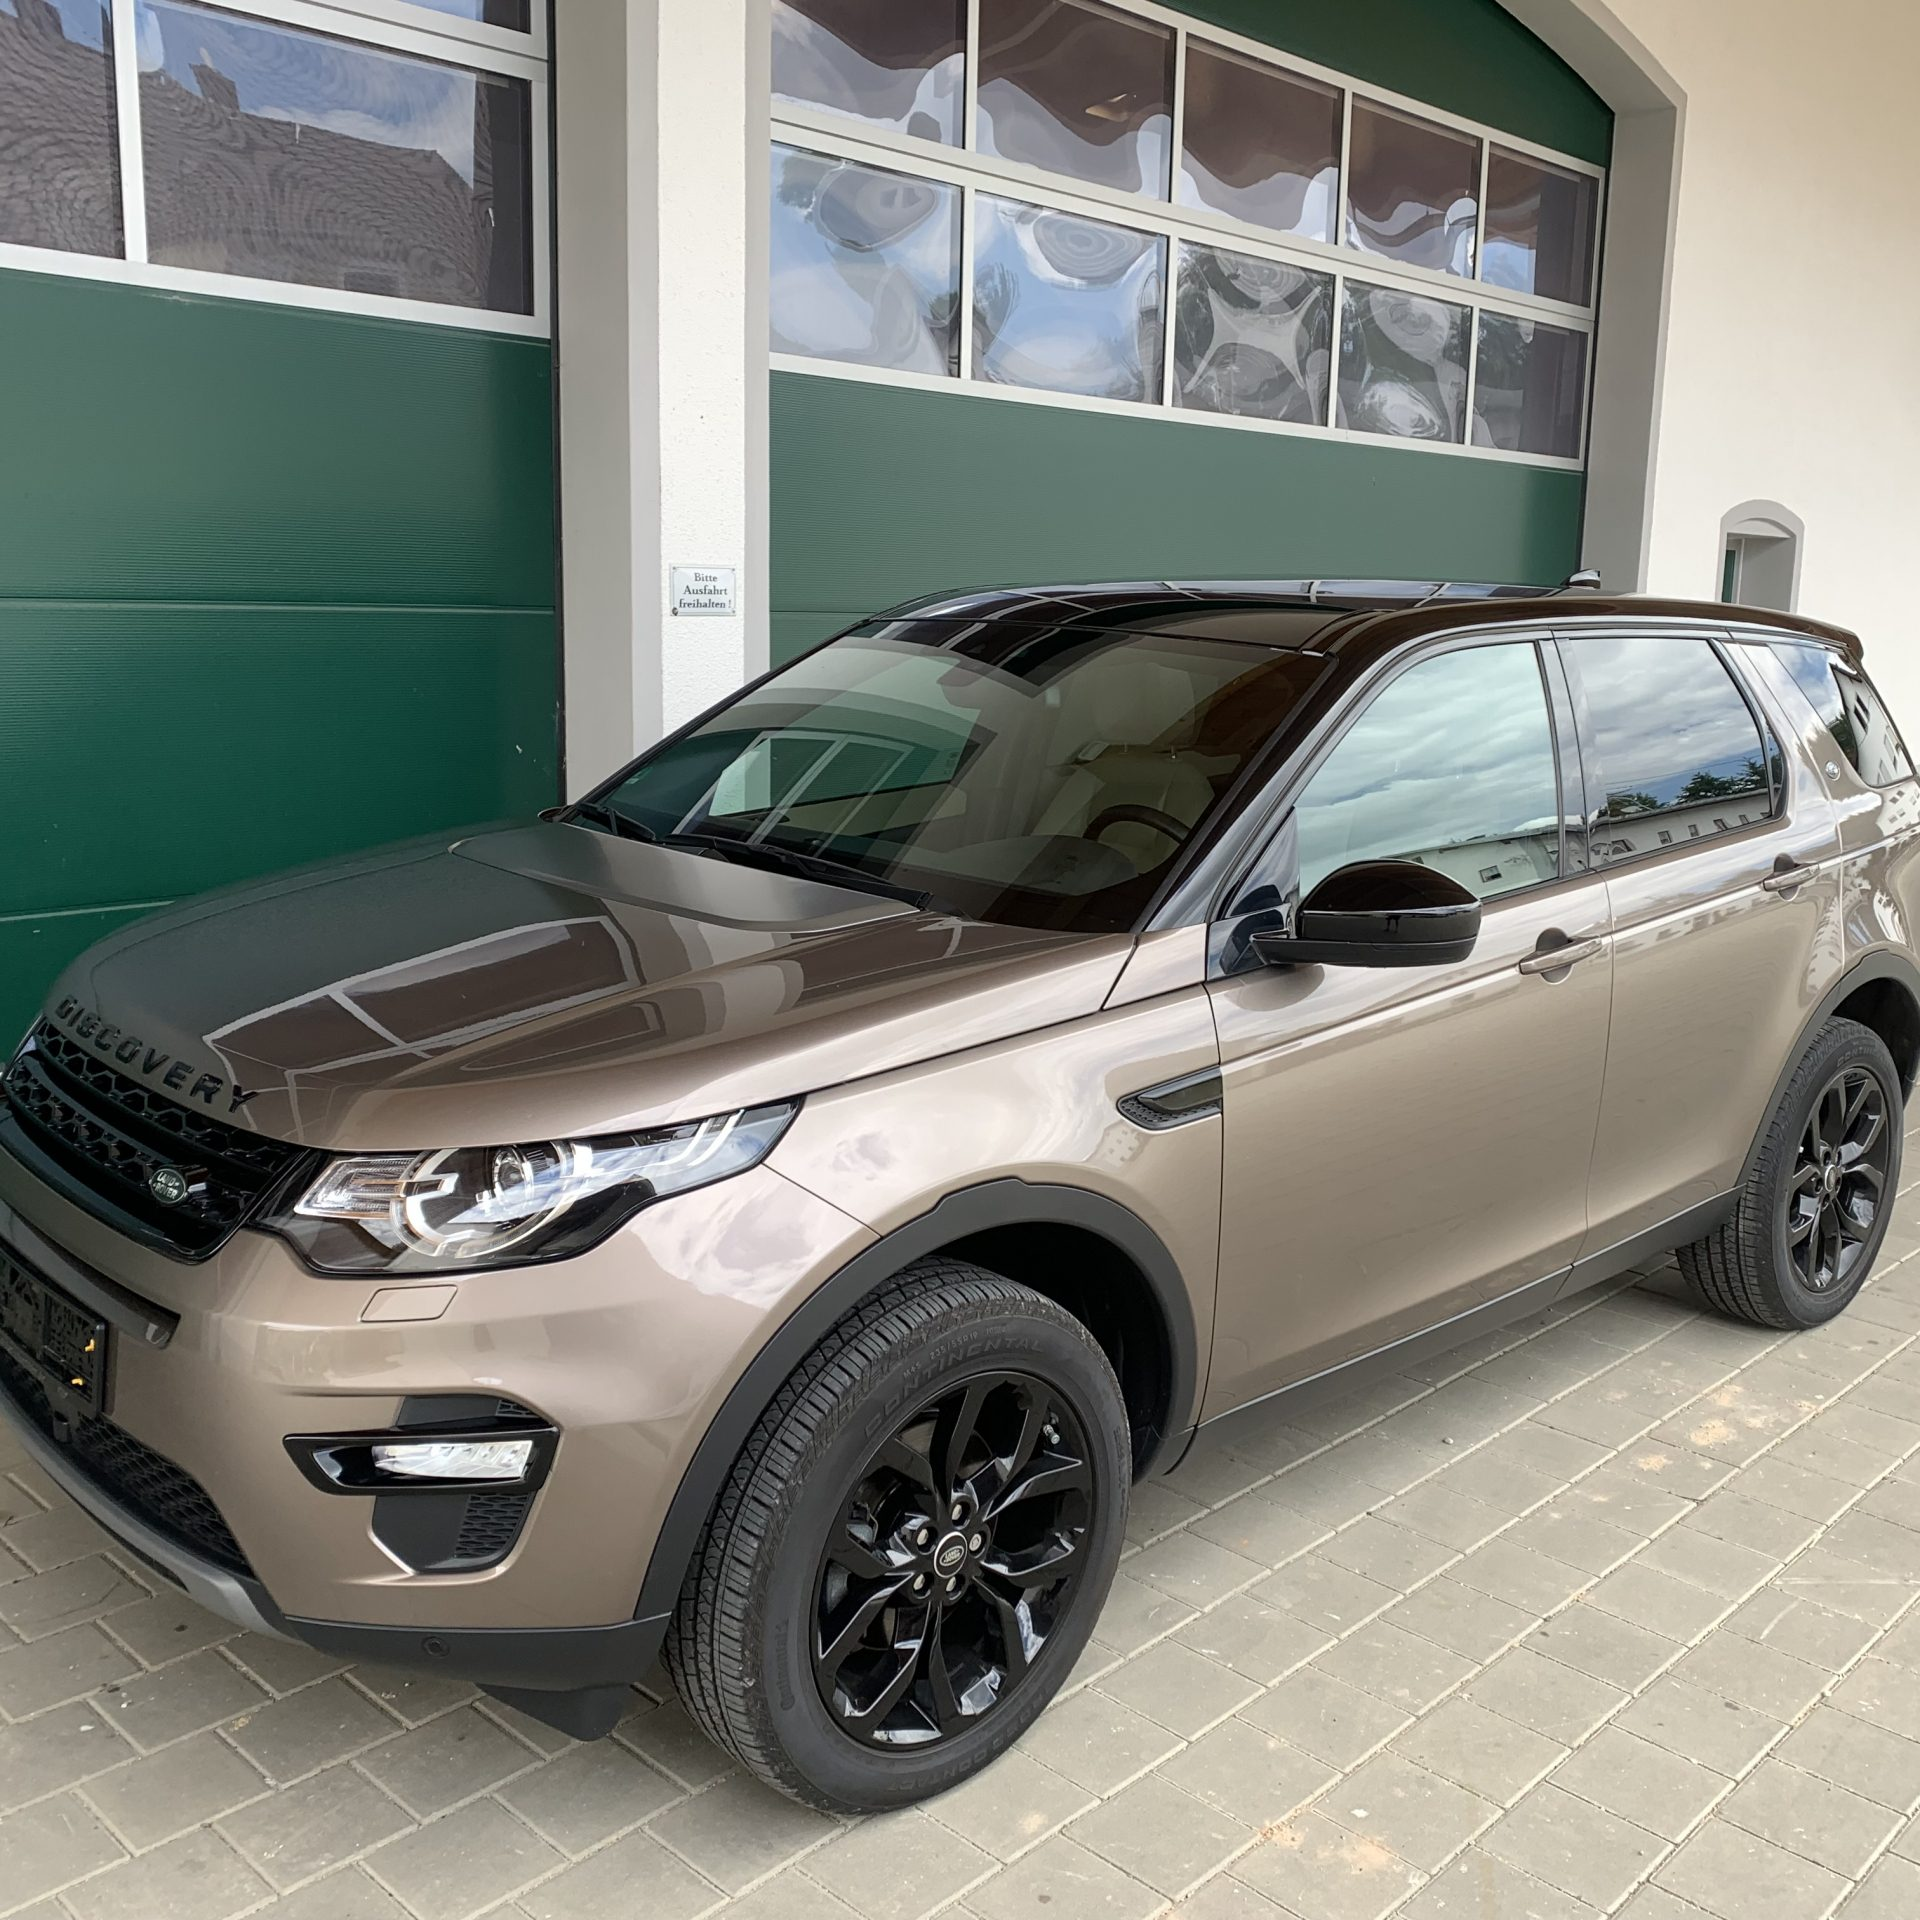 2017 Land Rover Discovery Sport 2.01 TD4 132 kW Automatik HSE